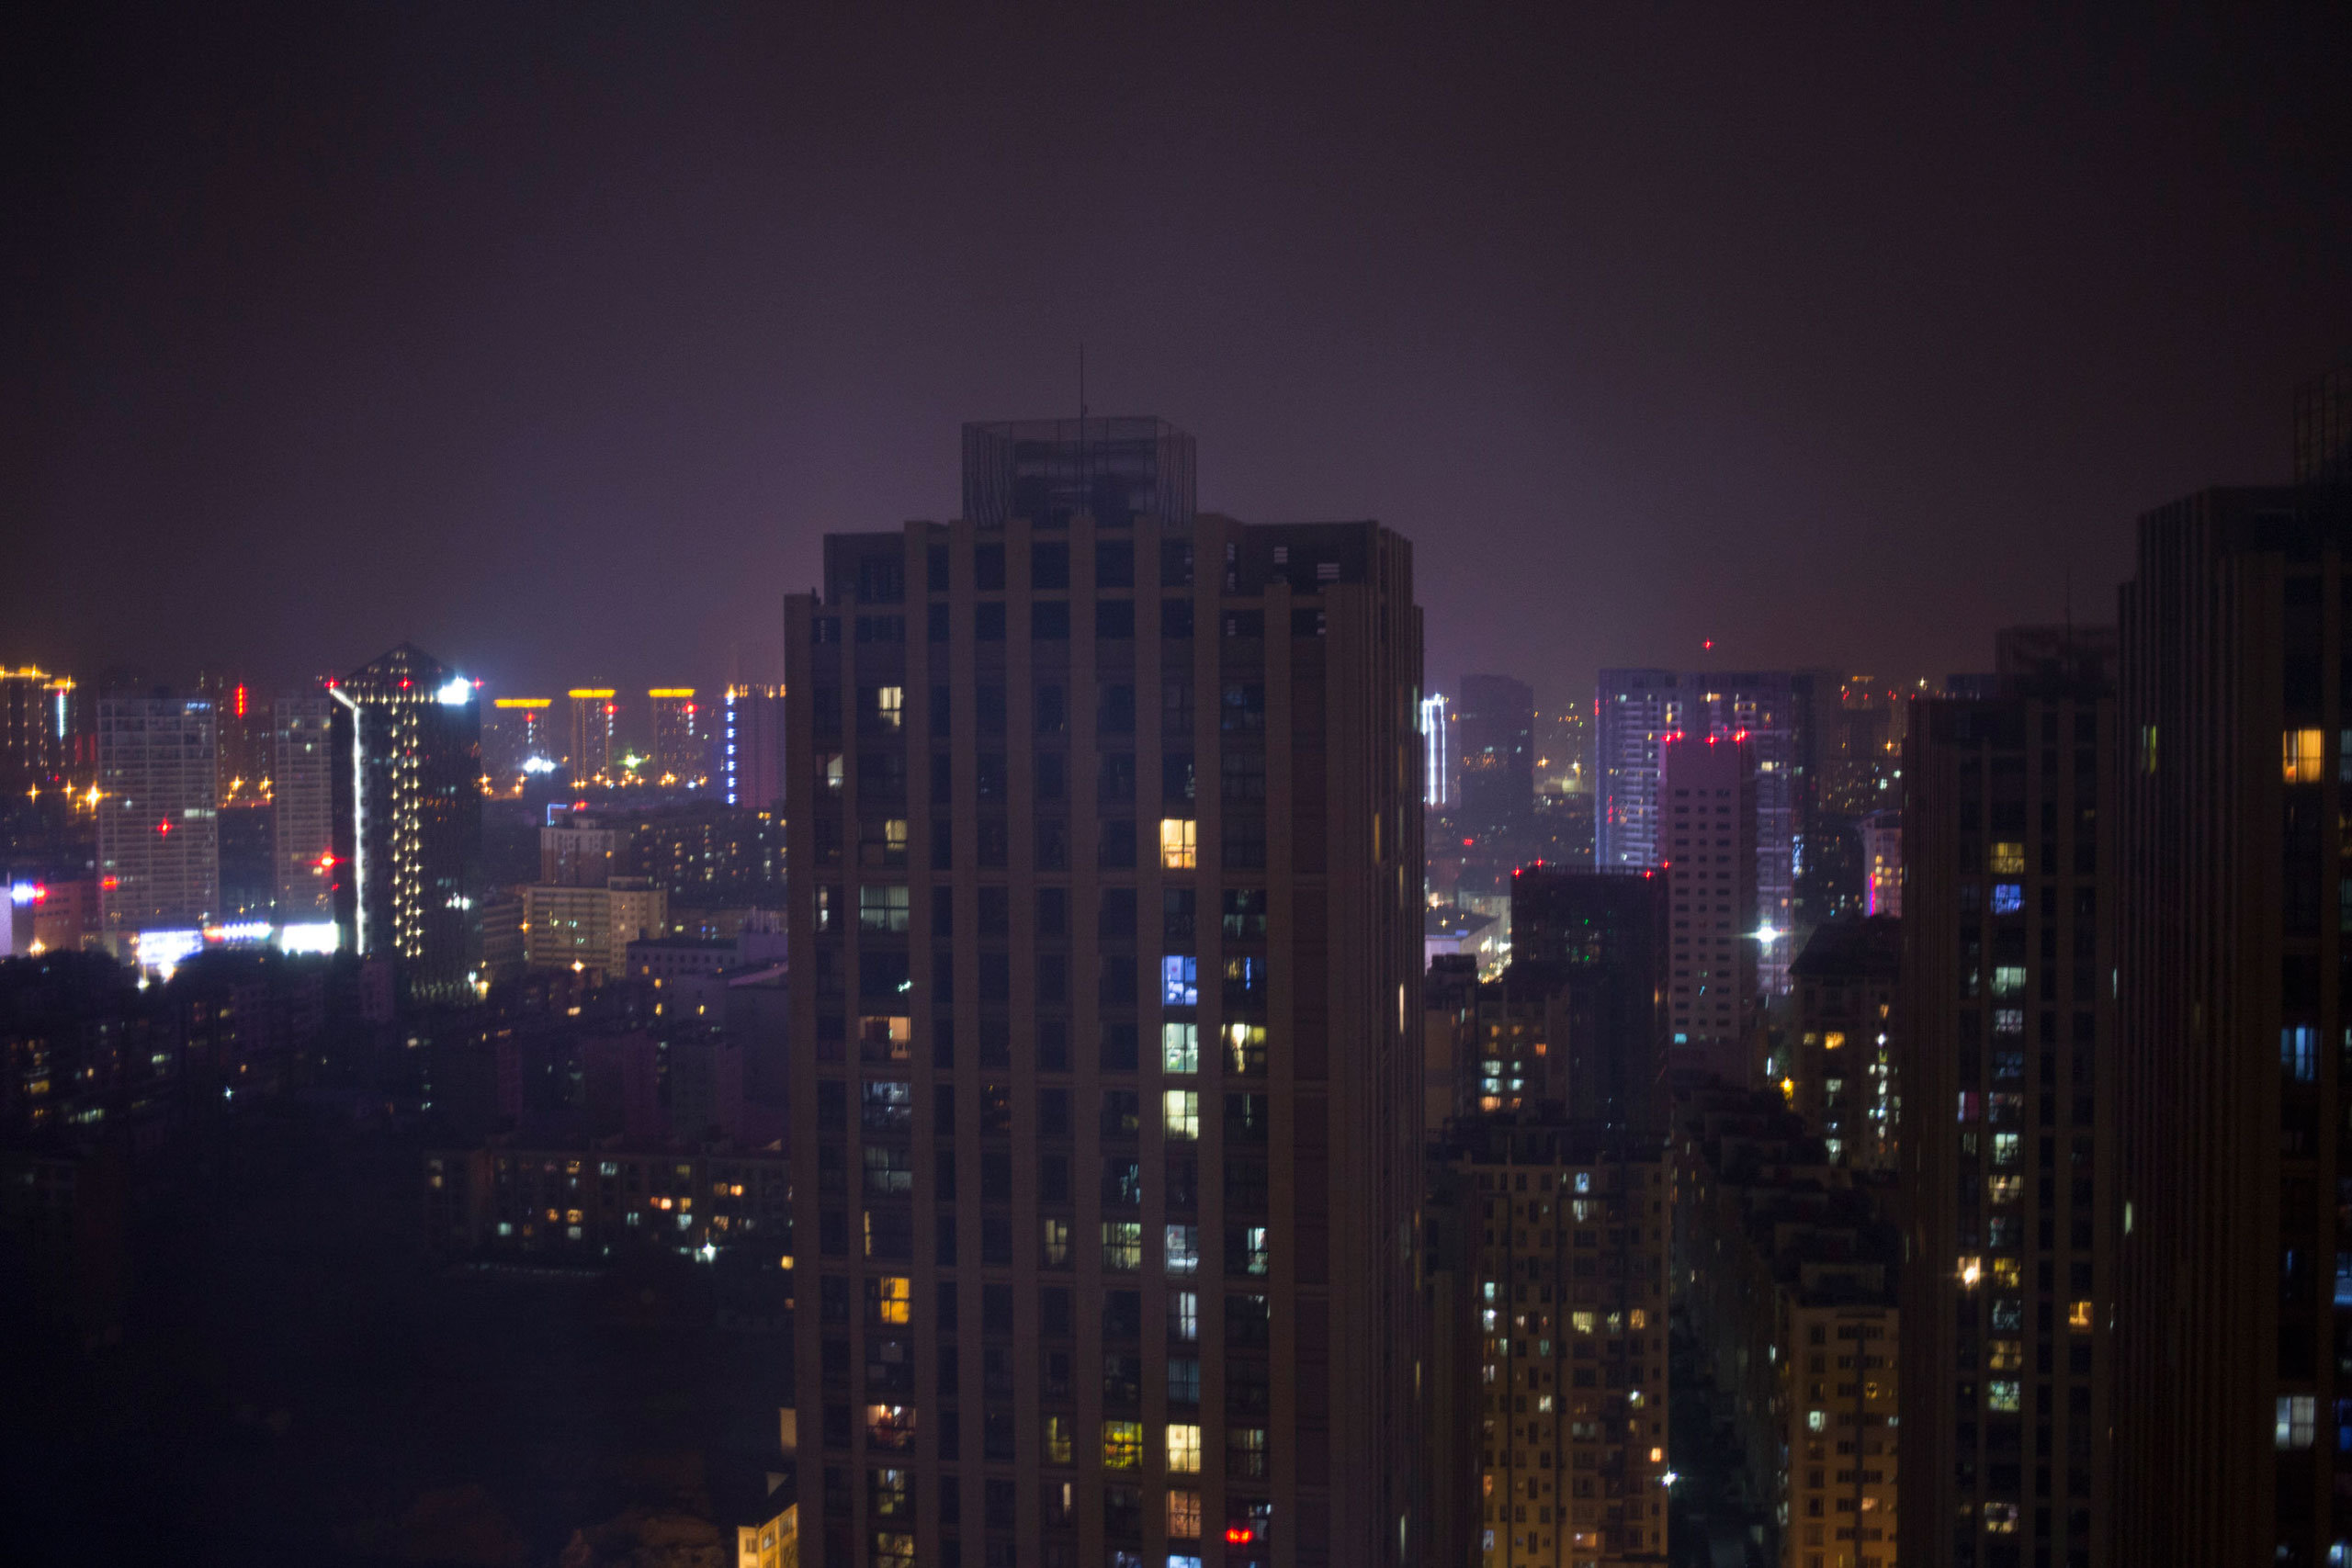 A view of Kunming at night from Nana's apartment, March 22, 2015.